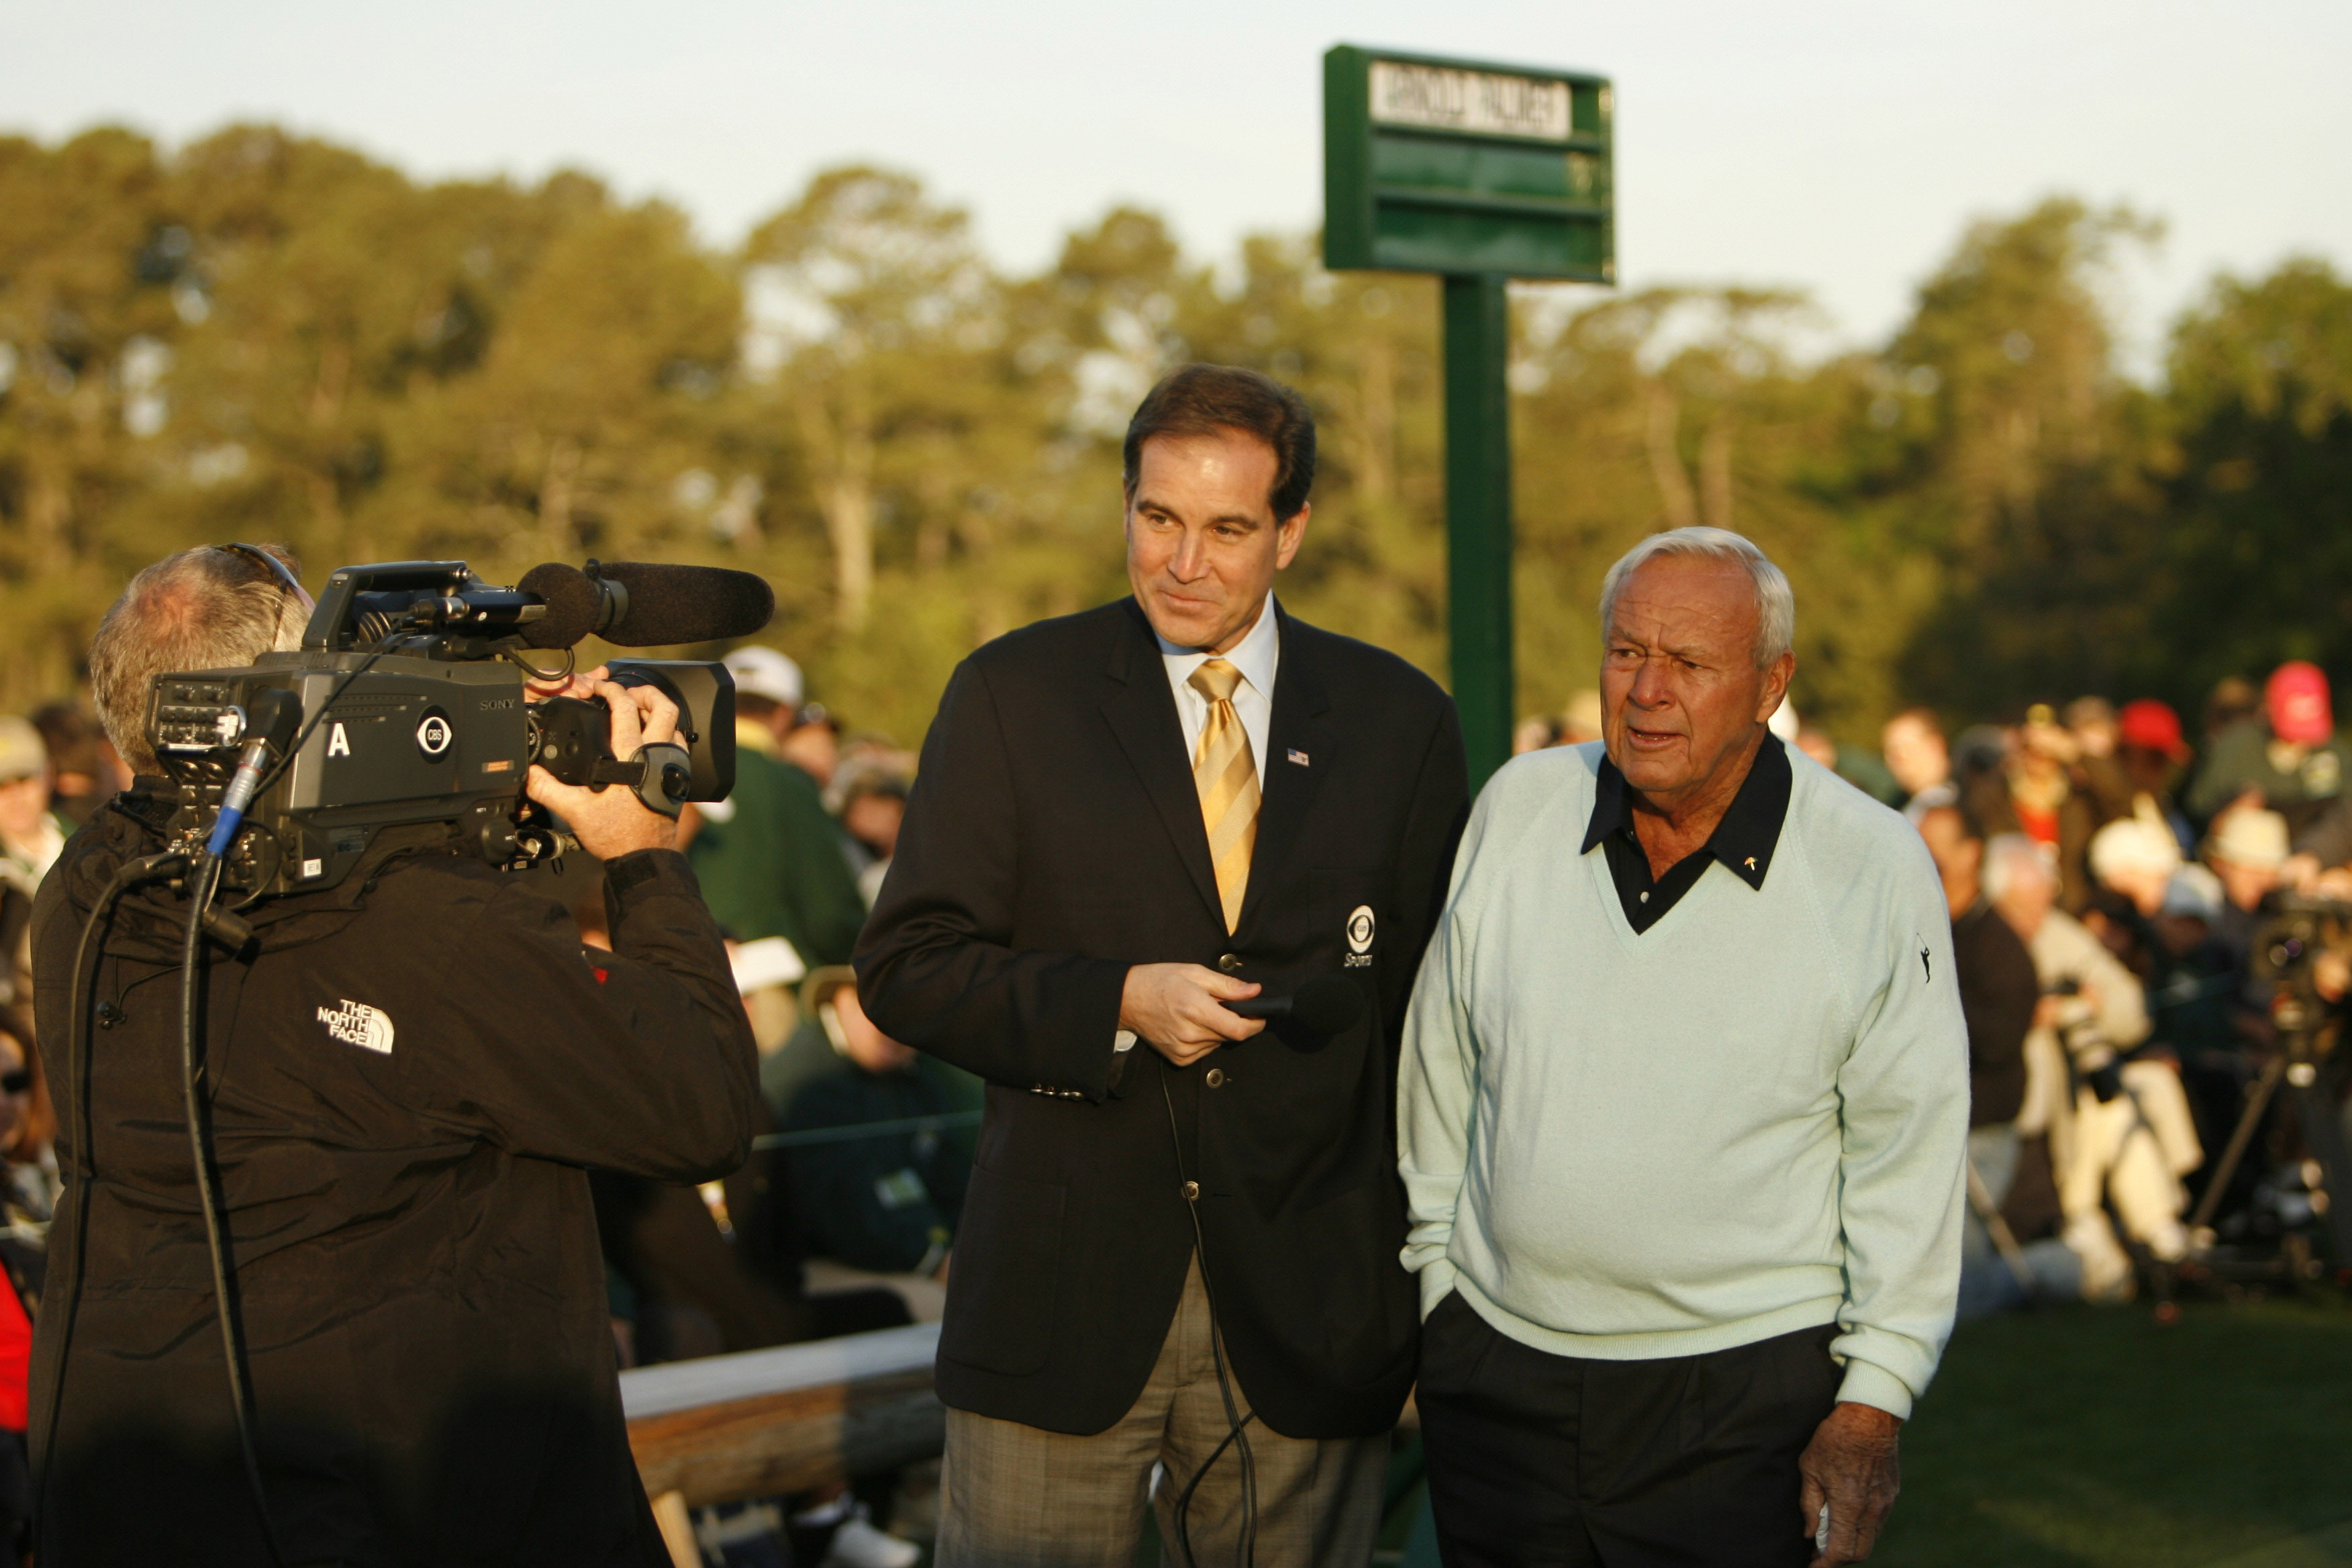 Arnold Palmer with CBS Sports announcer Jim Nantz during a media interview before the ceremonial tee shot on at the 2007 Masters.